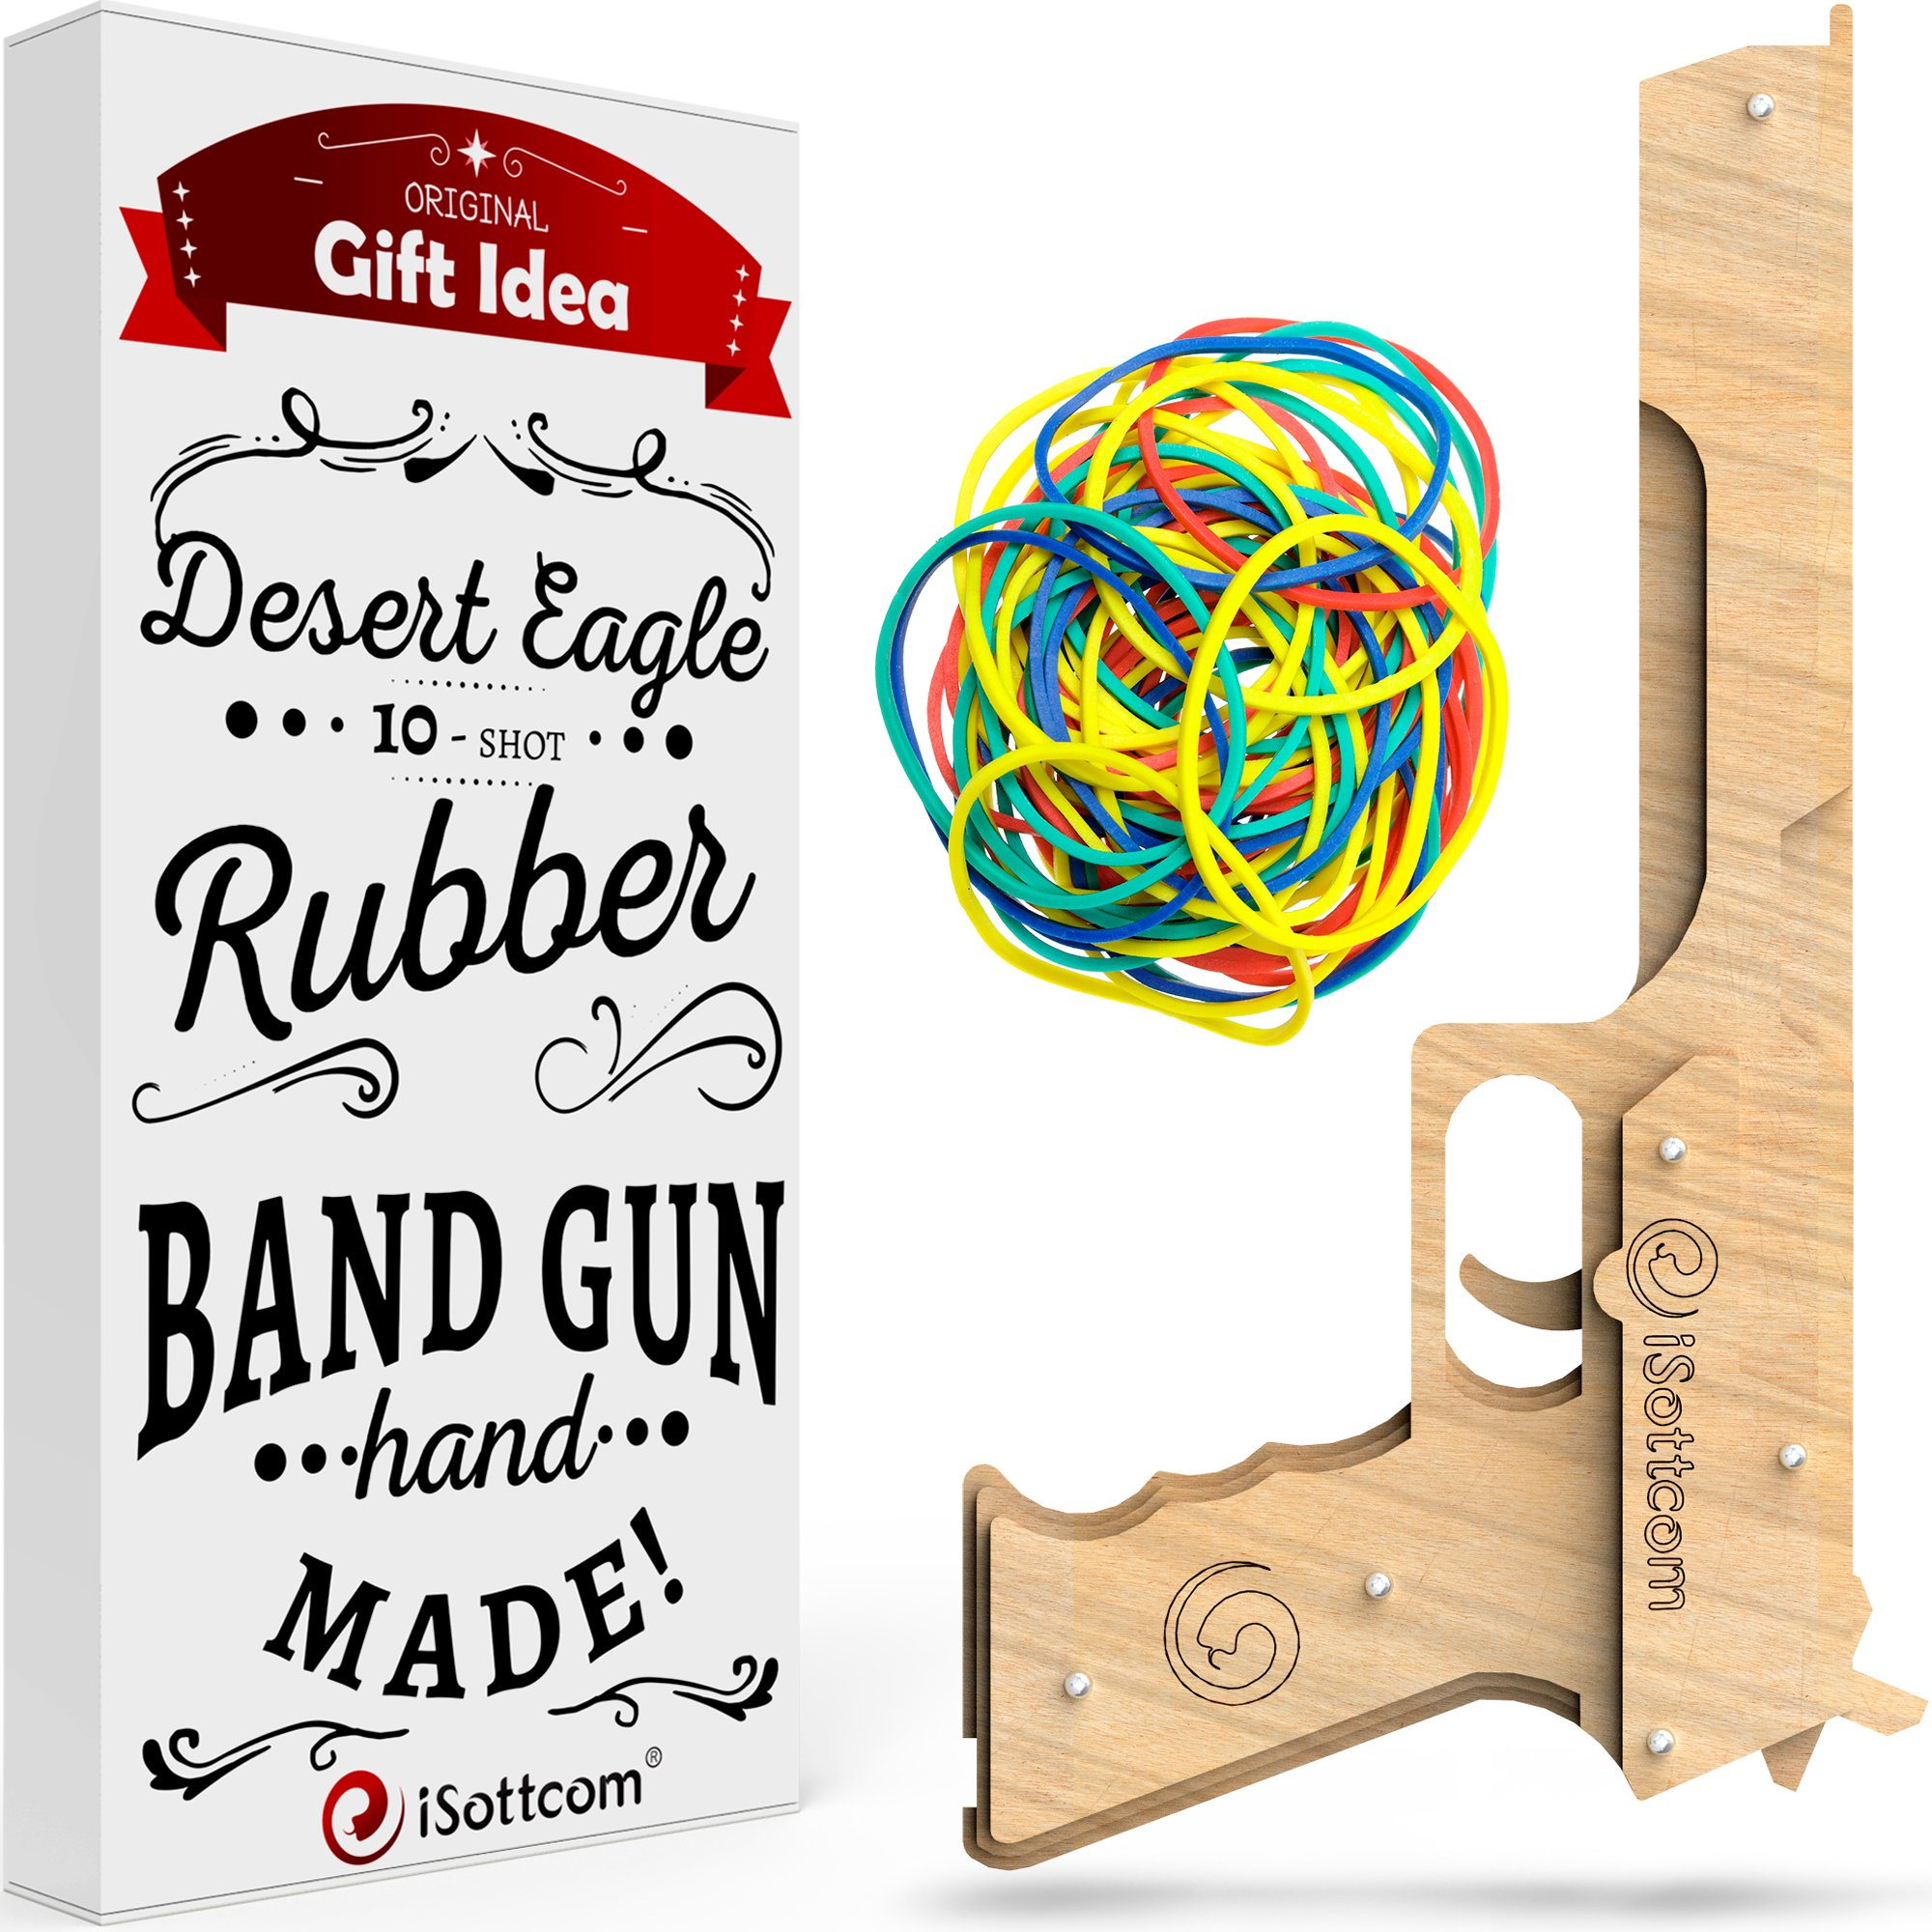 iSottcom Rubber Band Gun - Toy Gun Desert Eagle - Boys Toys for Outdoor Indoor Game - Wooden Toy Guns - Best Present for Men - Wooden Pistol for Shooting Game - Kids Toys for Pretend Play by iSottcom